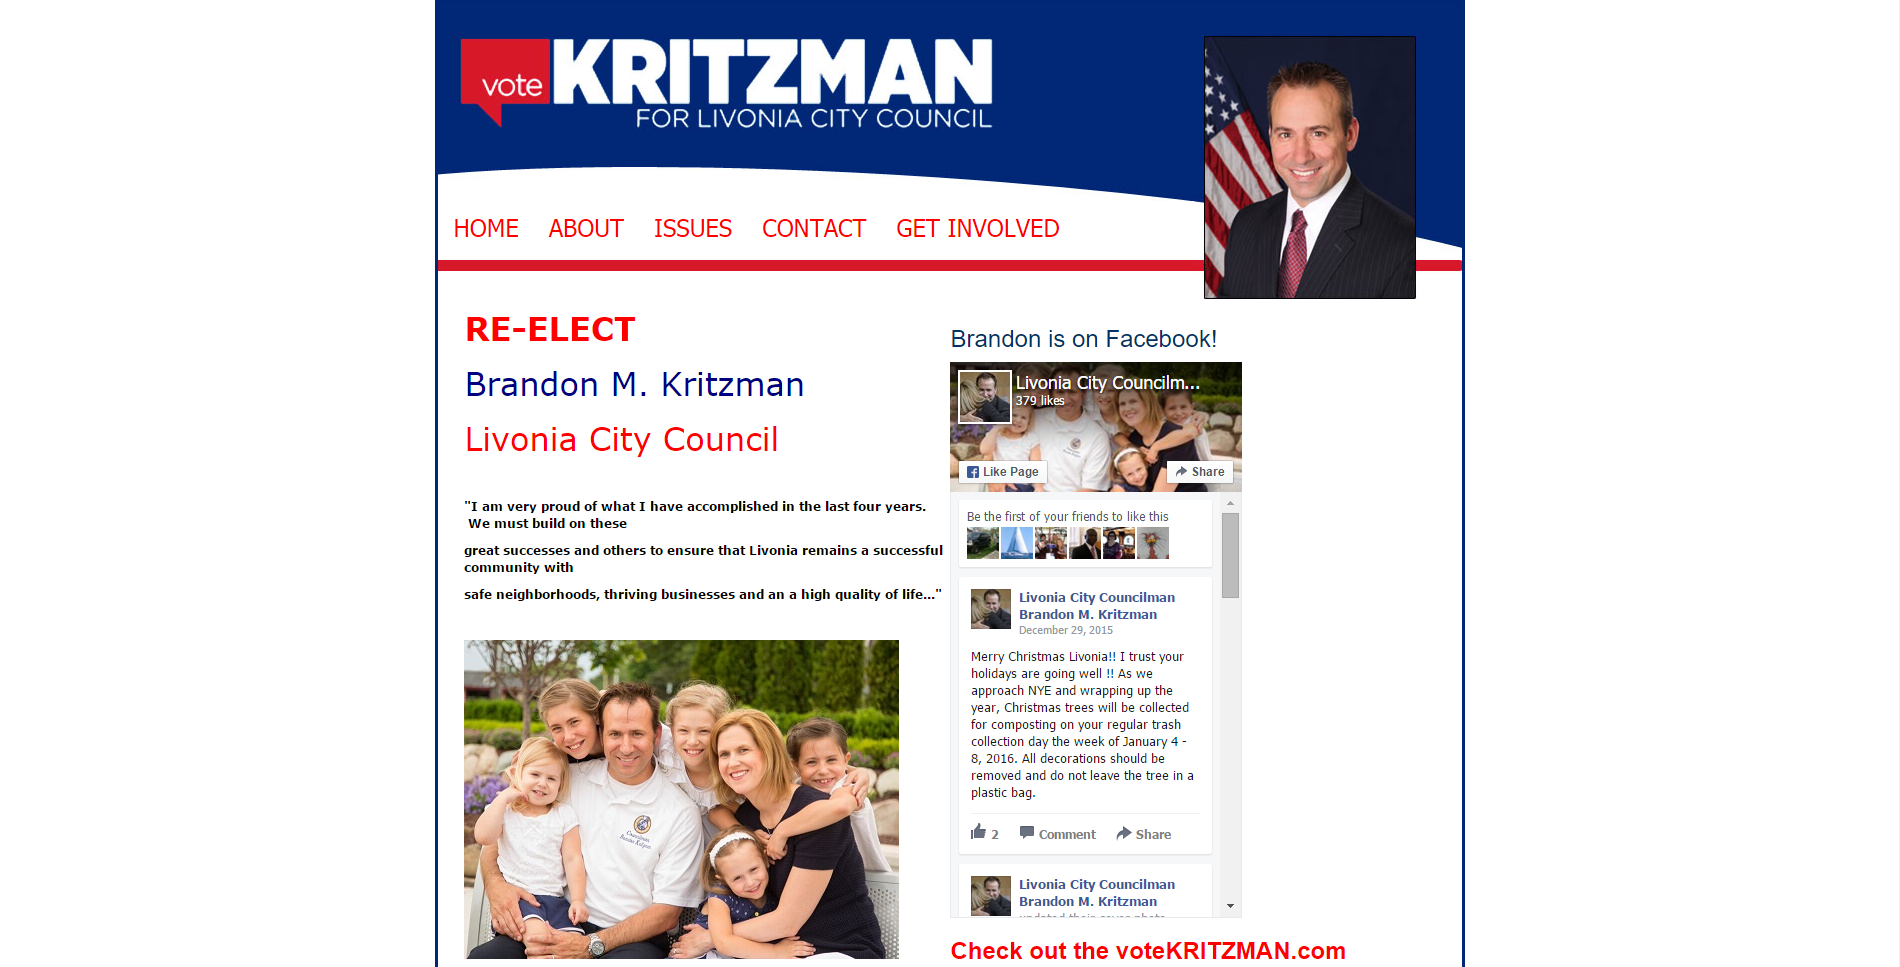 Vote Kritzman Screenshot